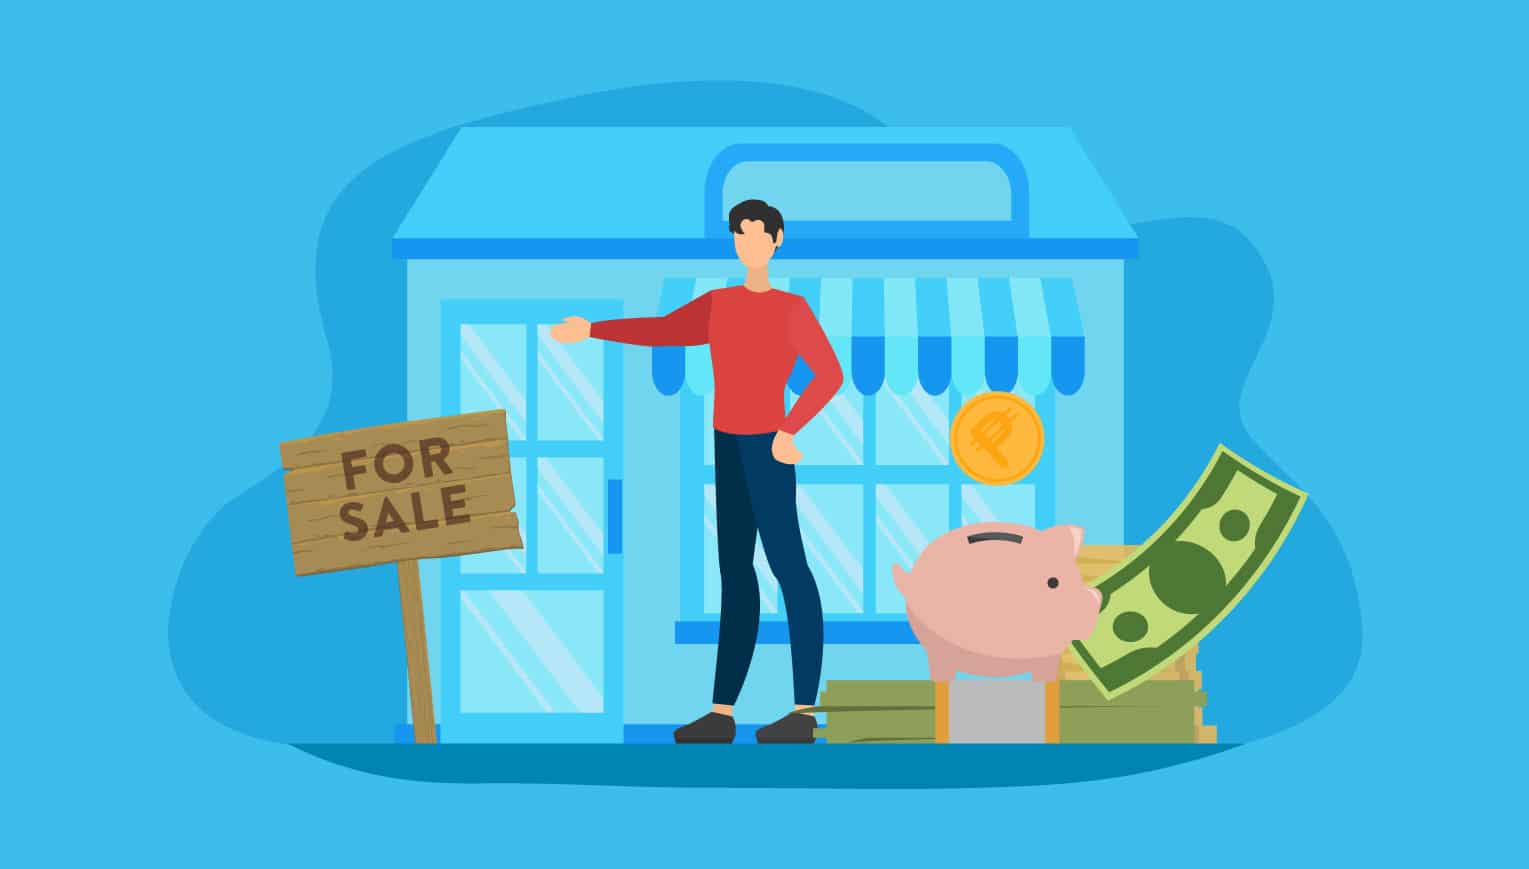 4 Key Questions for Owners to Consider When Selling Their Startup or SME